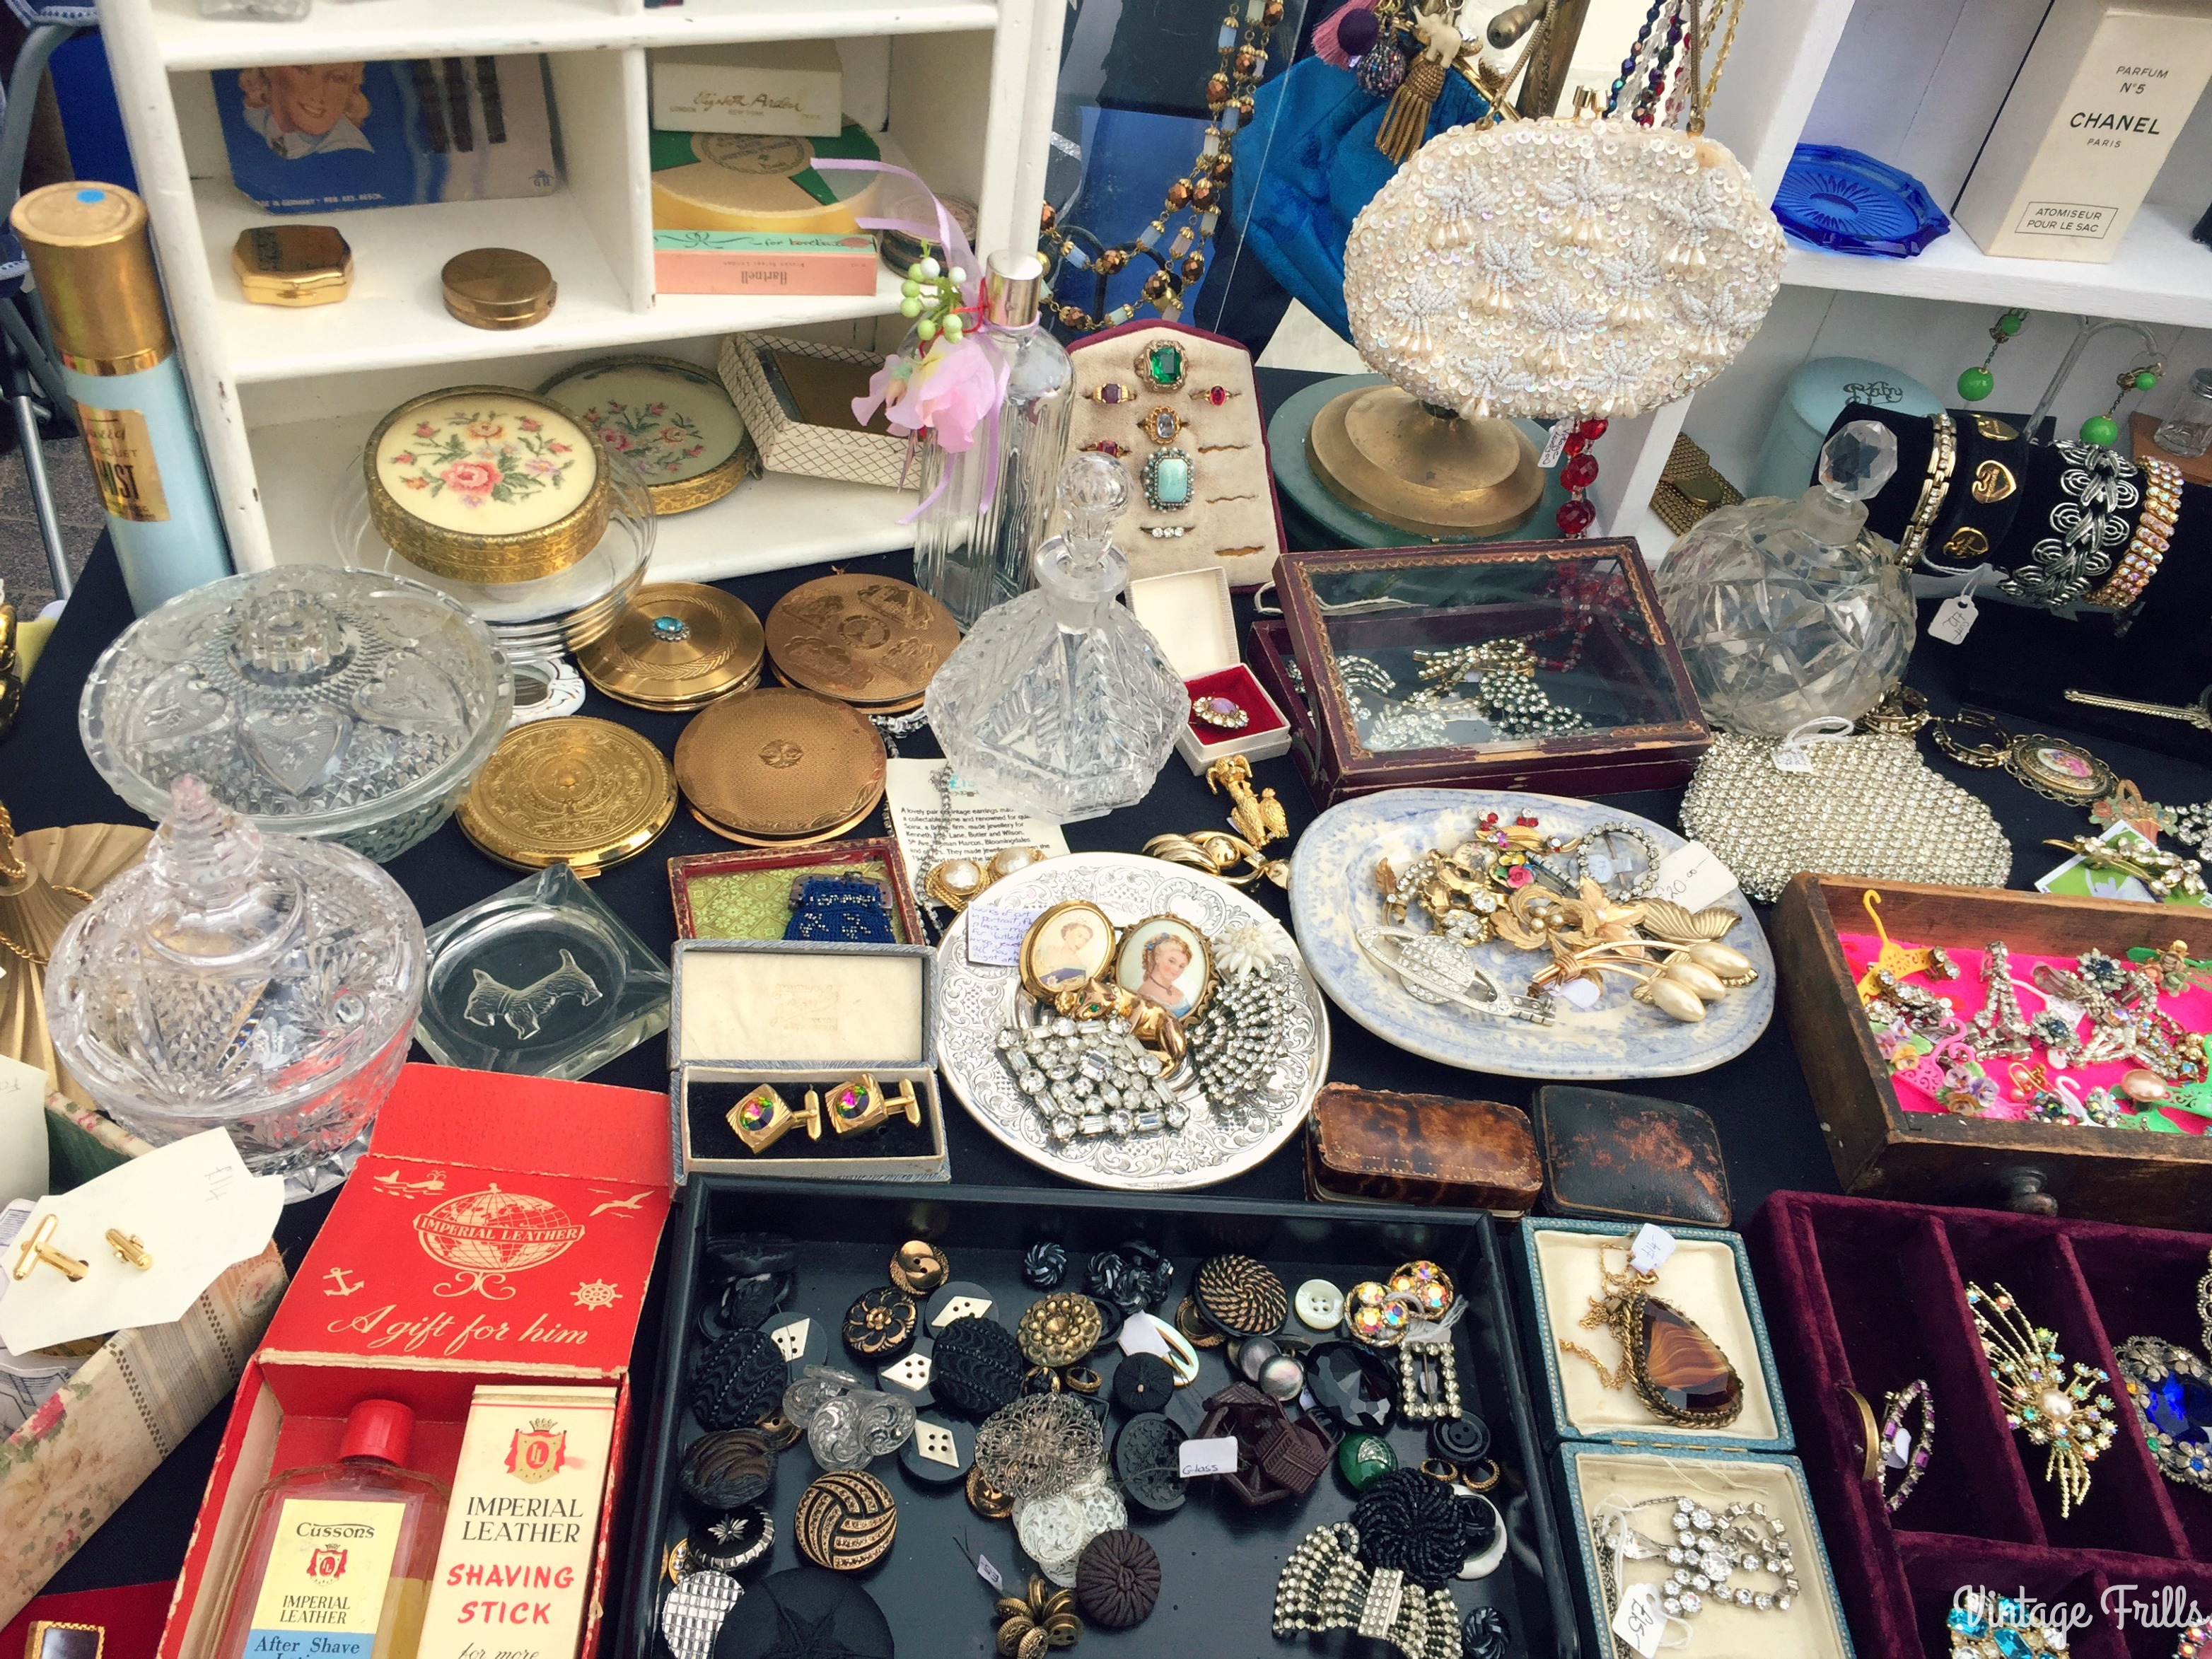 the-classic-car-boot-sale-jewellery-and-compacts